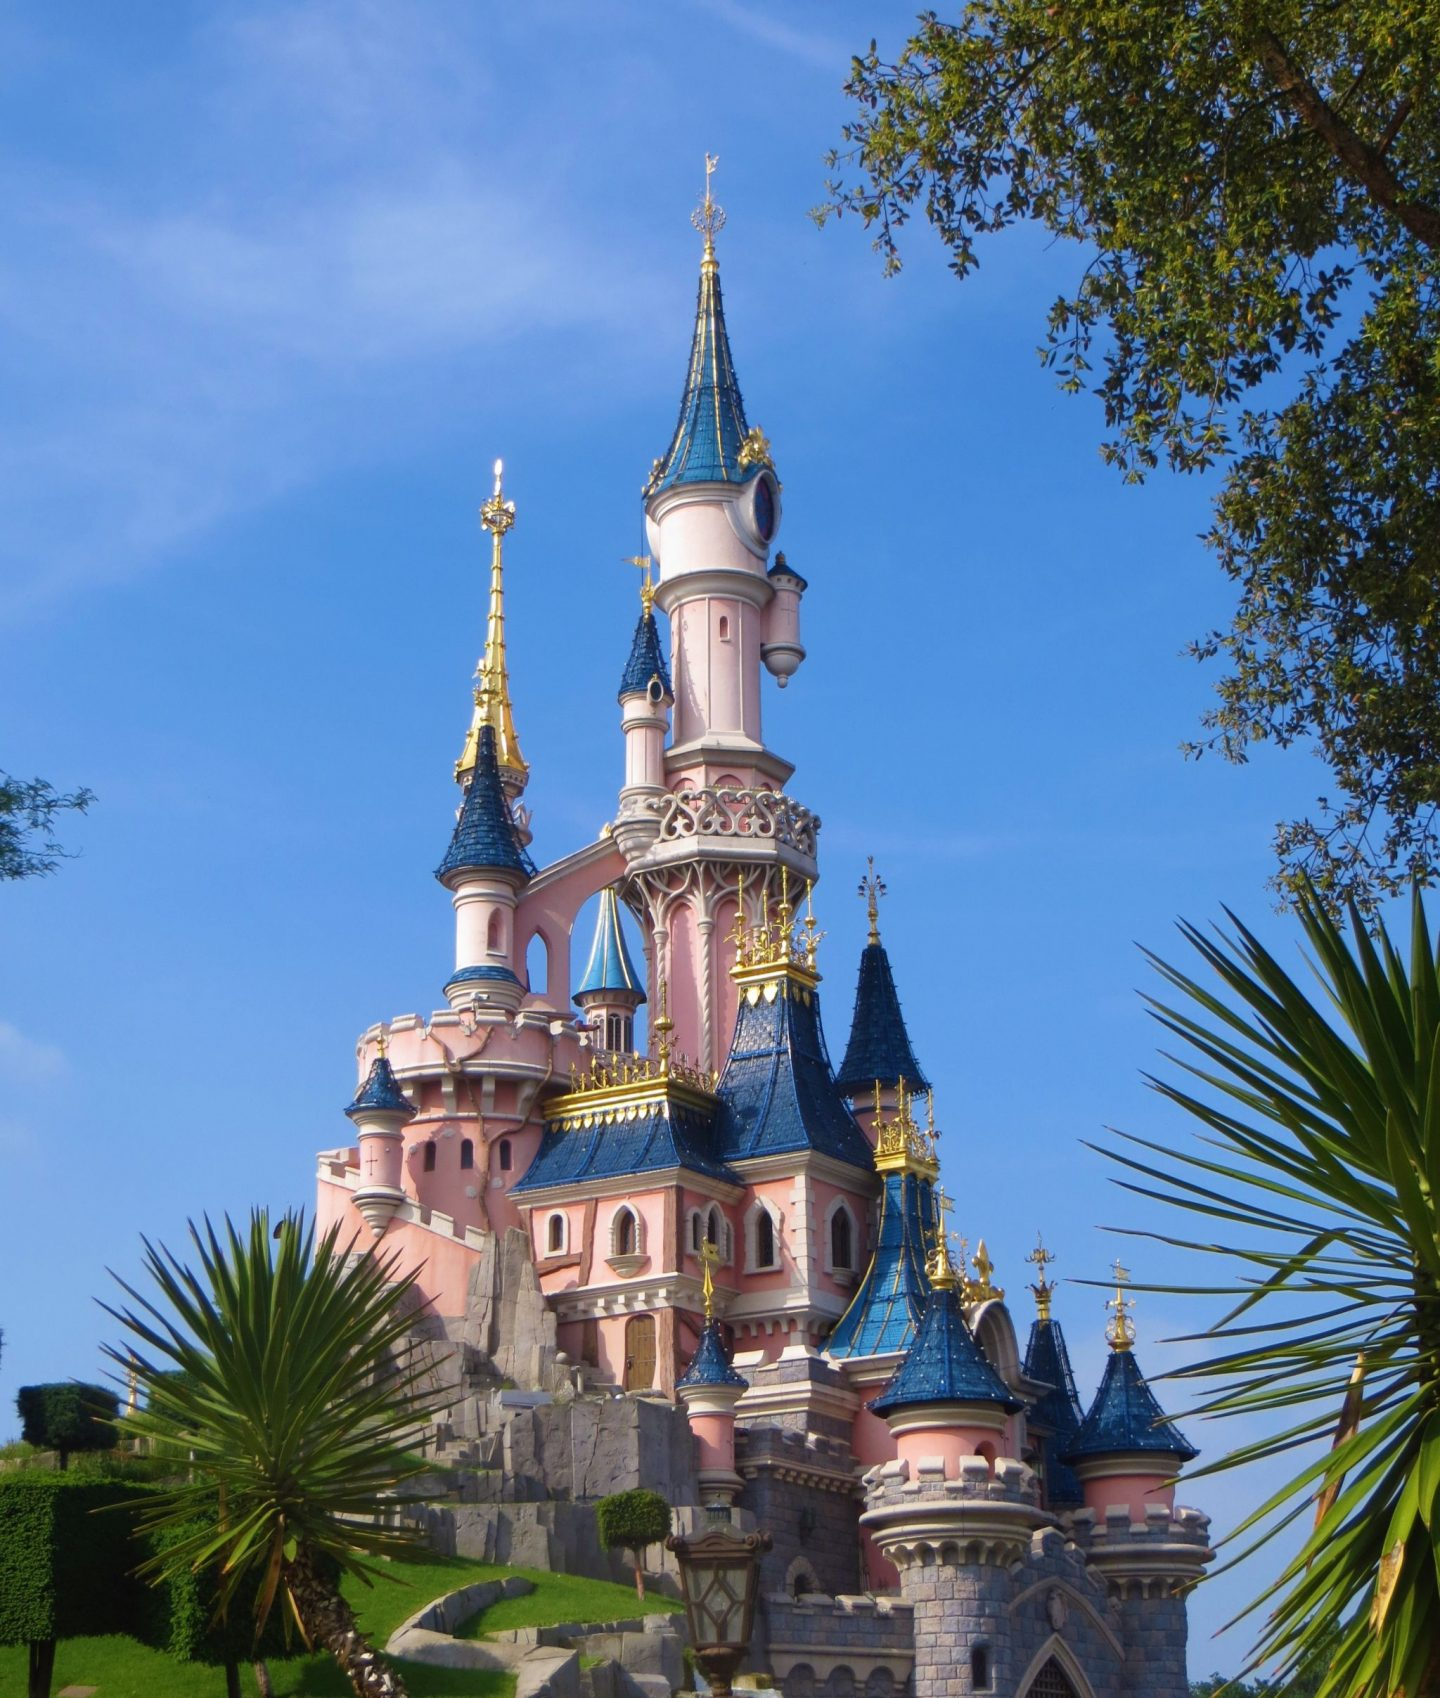 Disneyland Paris – Because it's worth it!